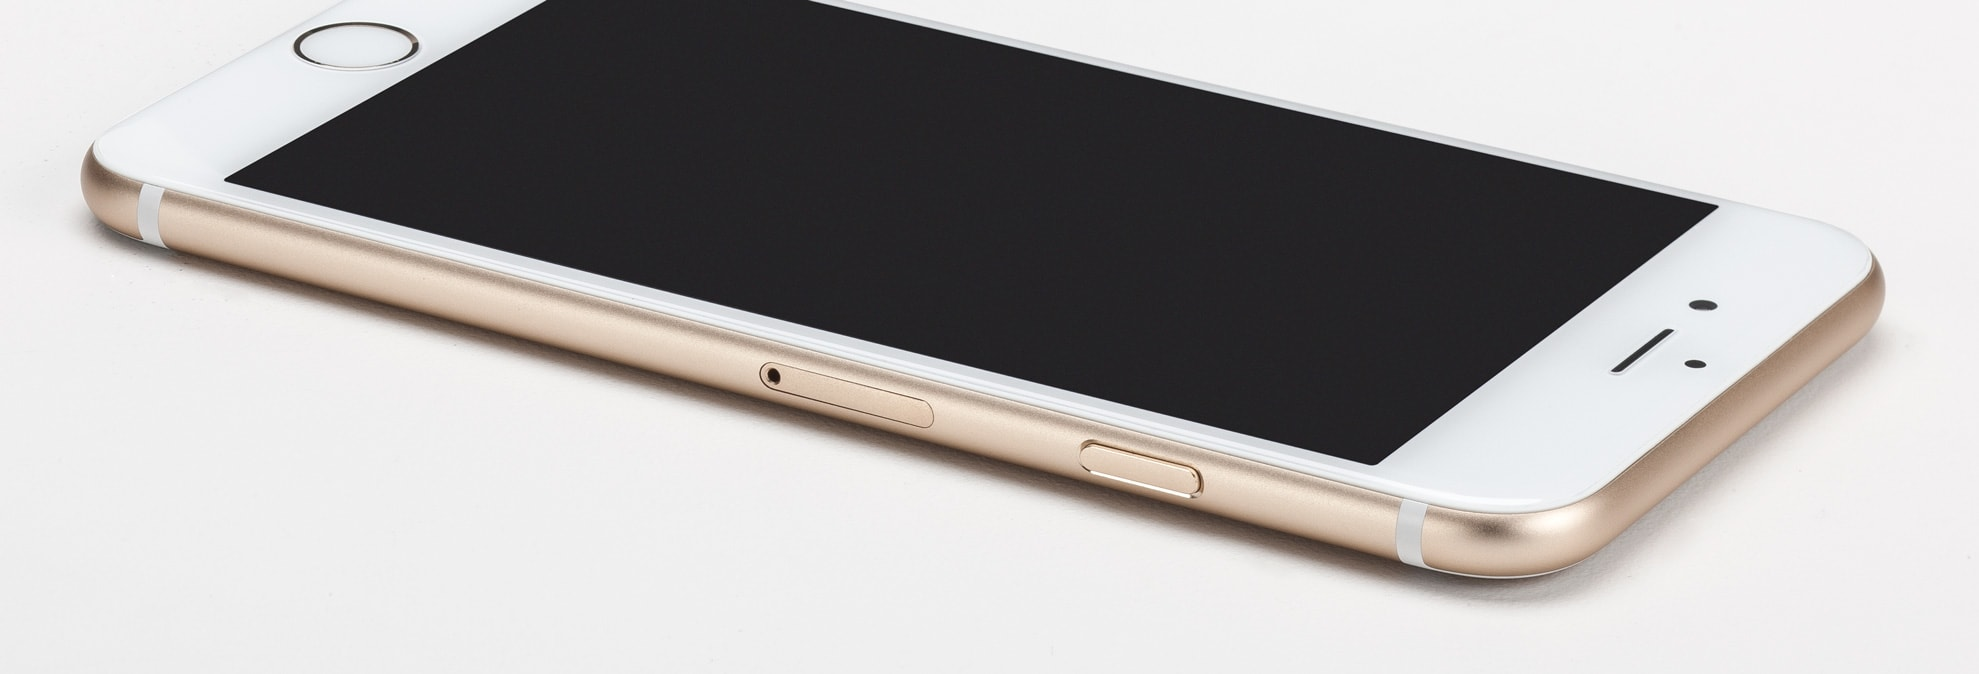 iPhone 6s Battery Problem: What You Need to Know - Consumer Reports